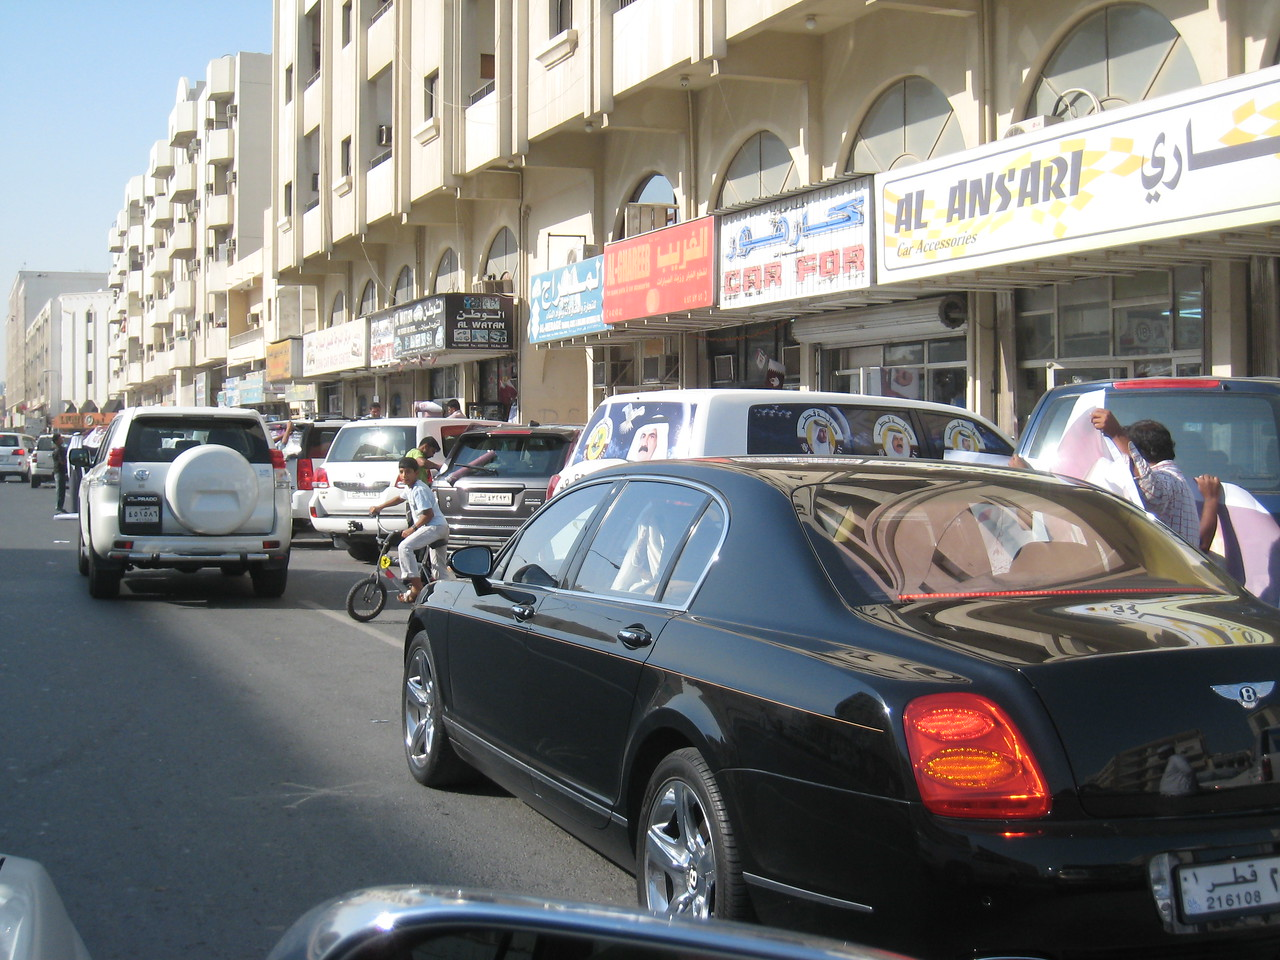 The row of car accessory shops who are flat out on national day applying decals to